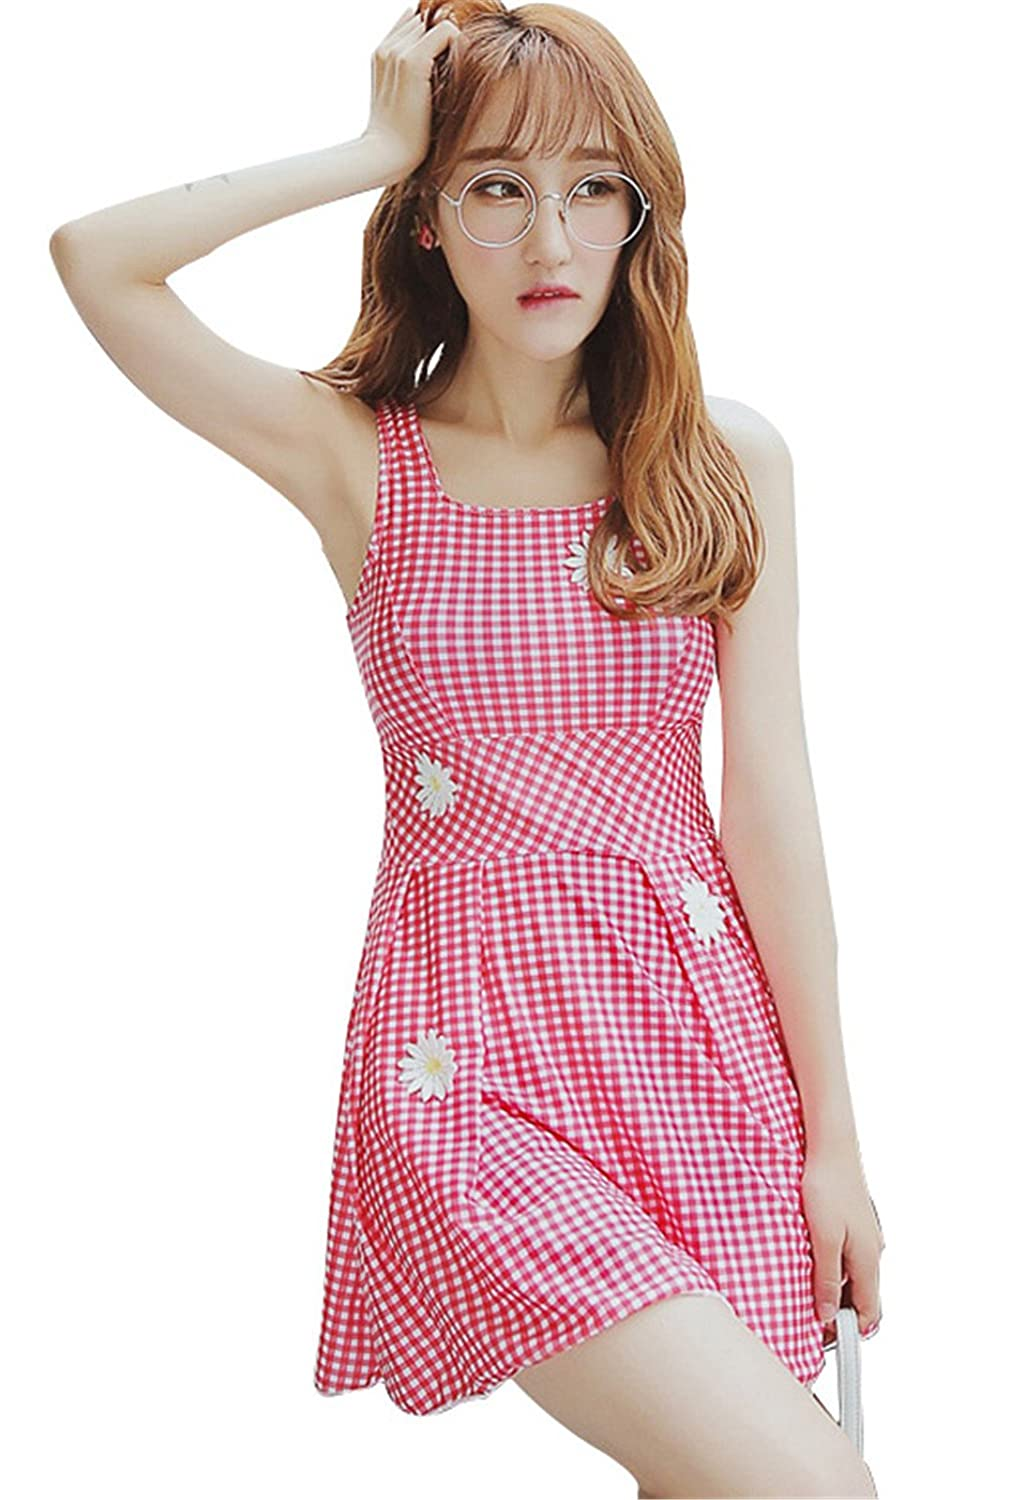 Two-Piece Gingham Checkered Check Skirted Swimsuit Tankini Top and Boxer Bottom Set Beach Wear